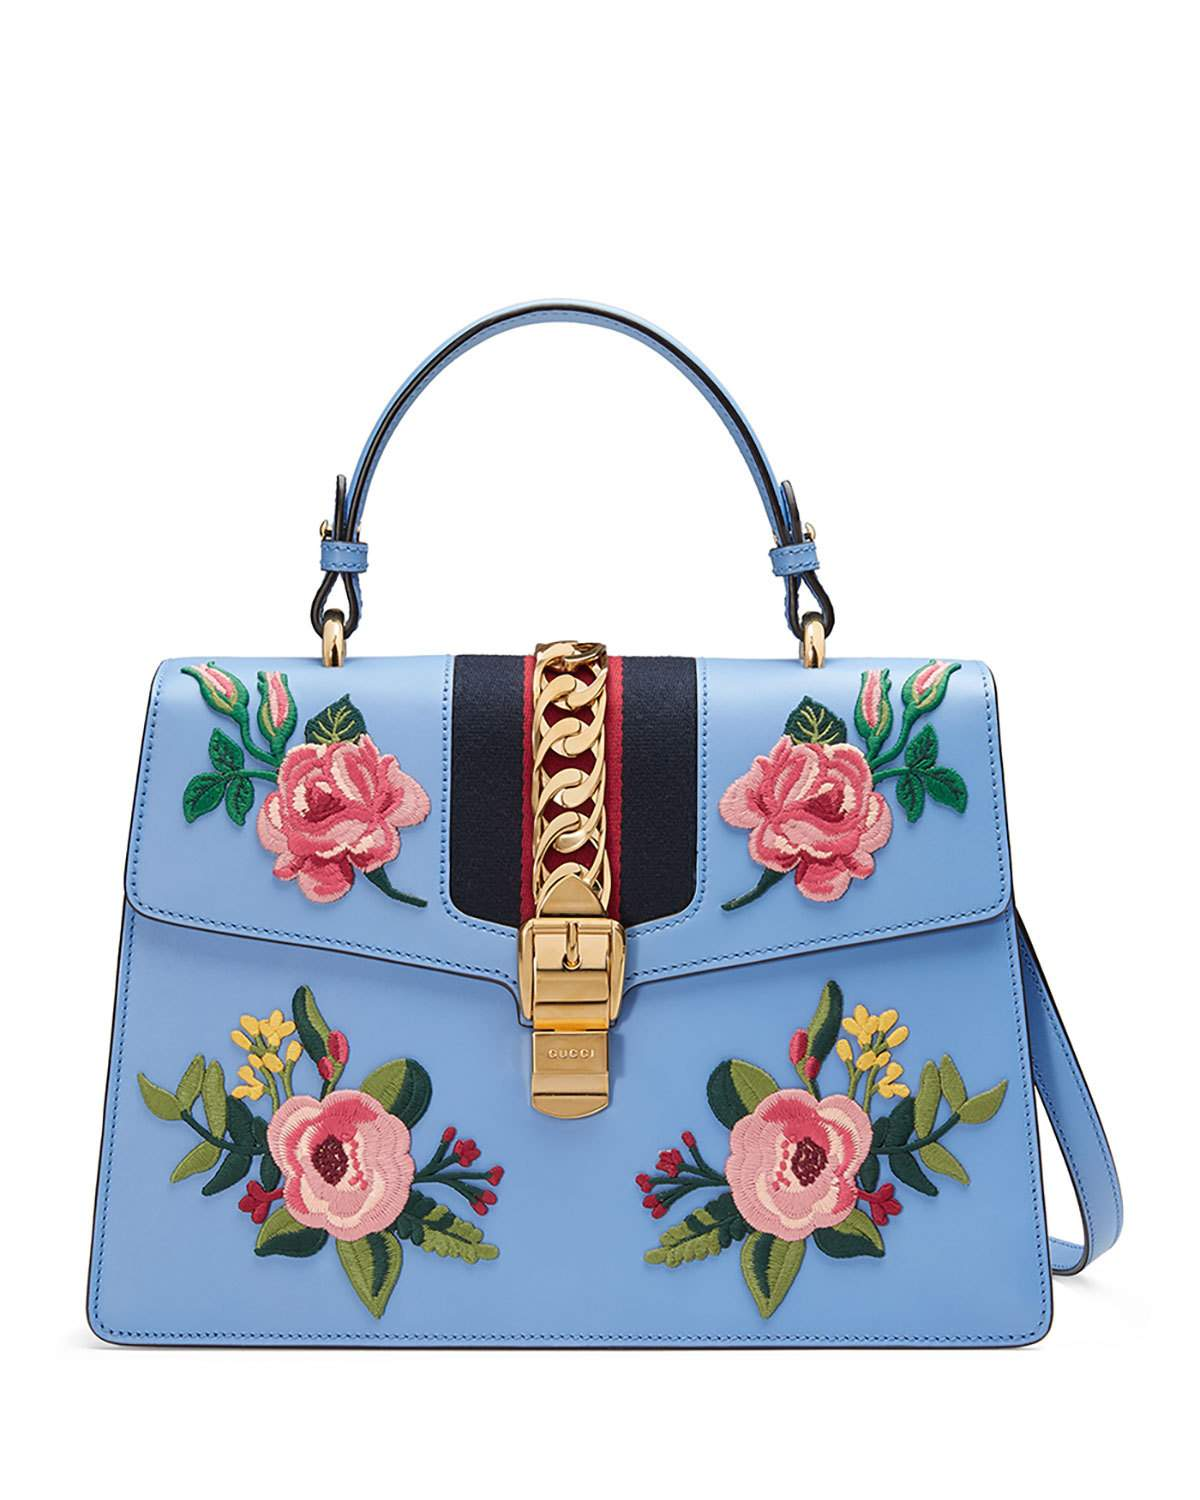 Gucci Light Blue Sylvie Embroidered Leather Top Handle Satchel Bag